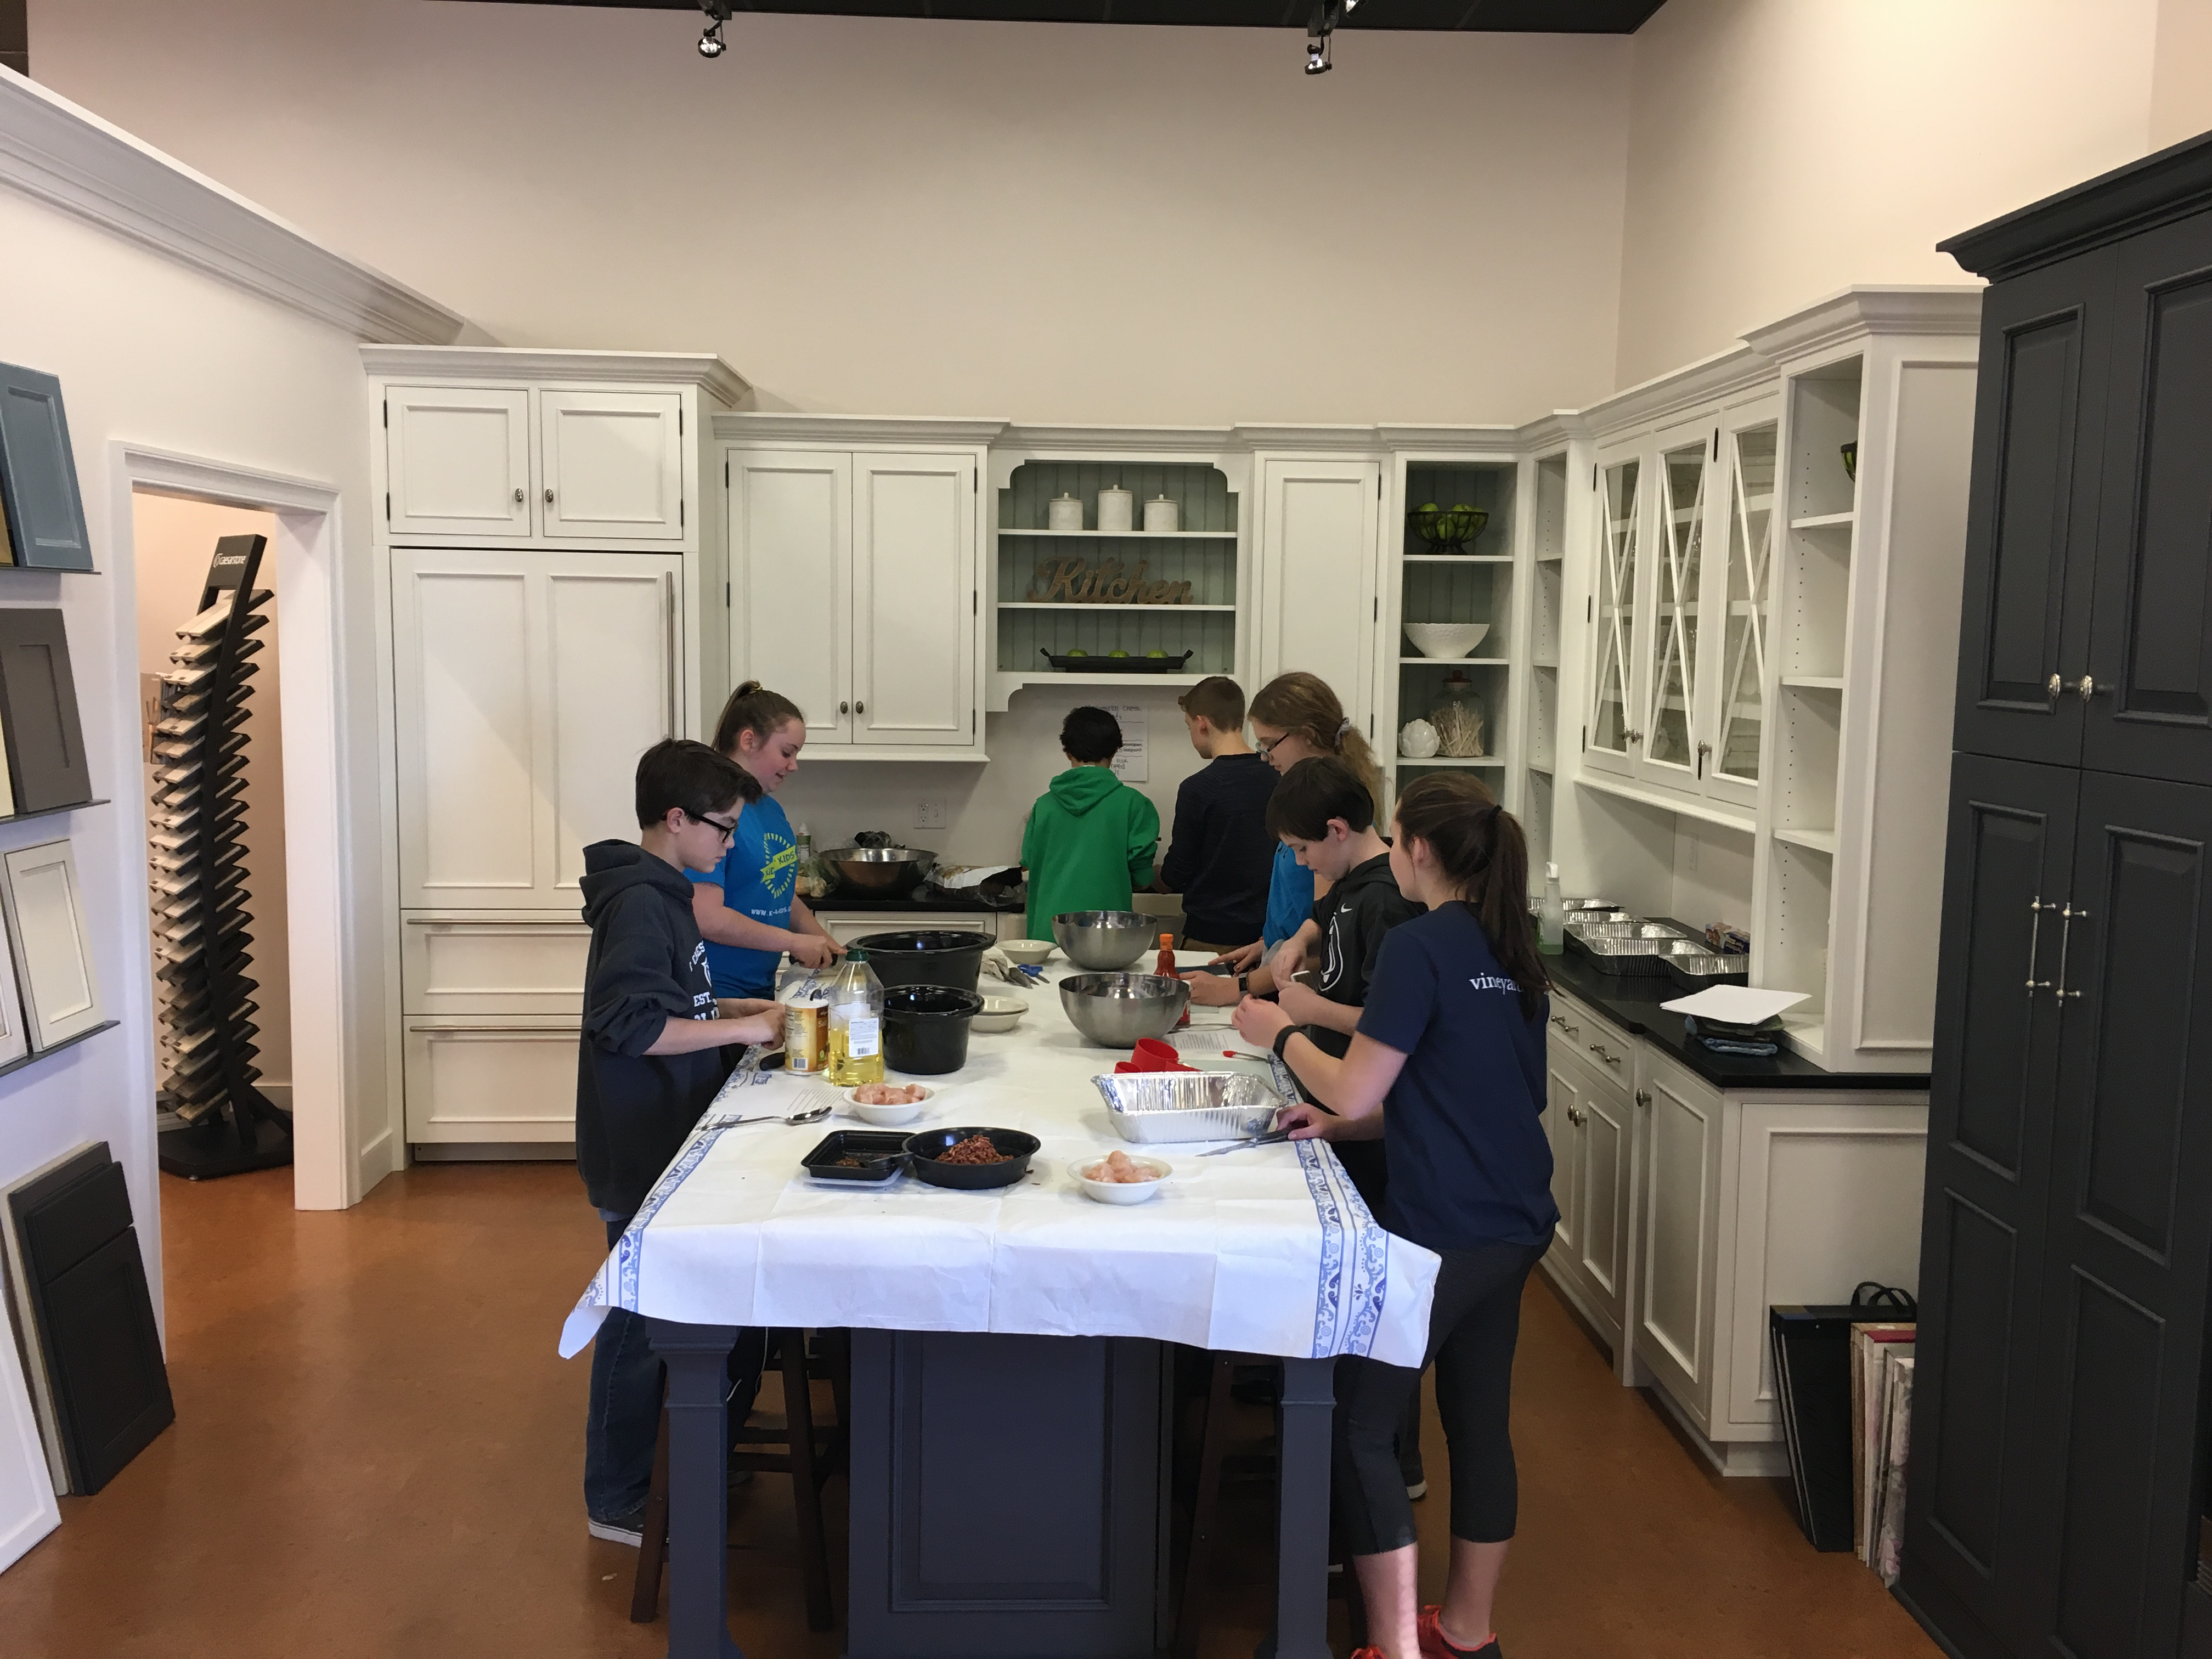 West Chester s Kitchen Studio at Pine Street Hosts Students as